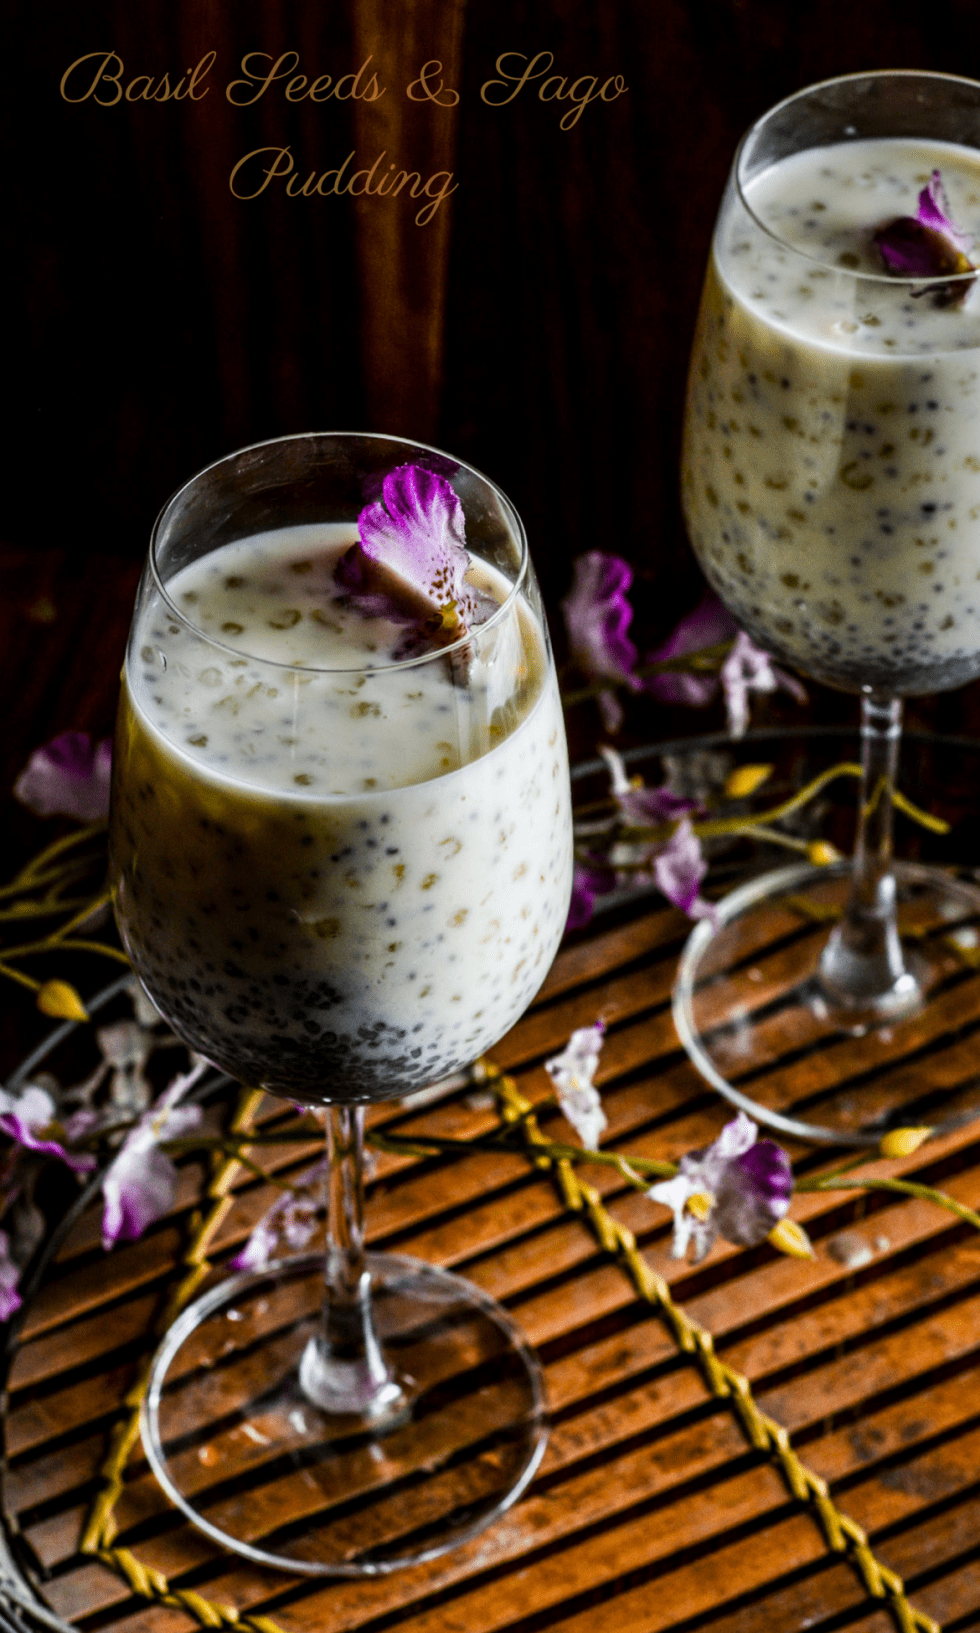 Basil Seeds & Sago Pudding